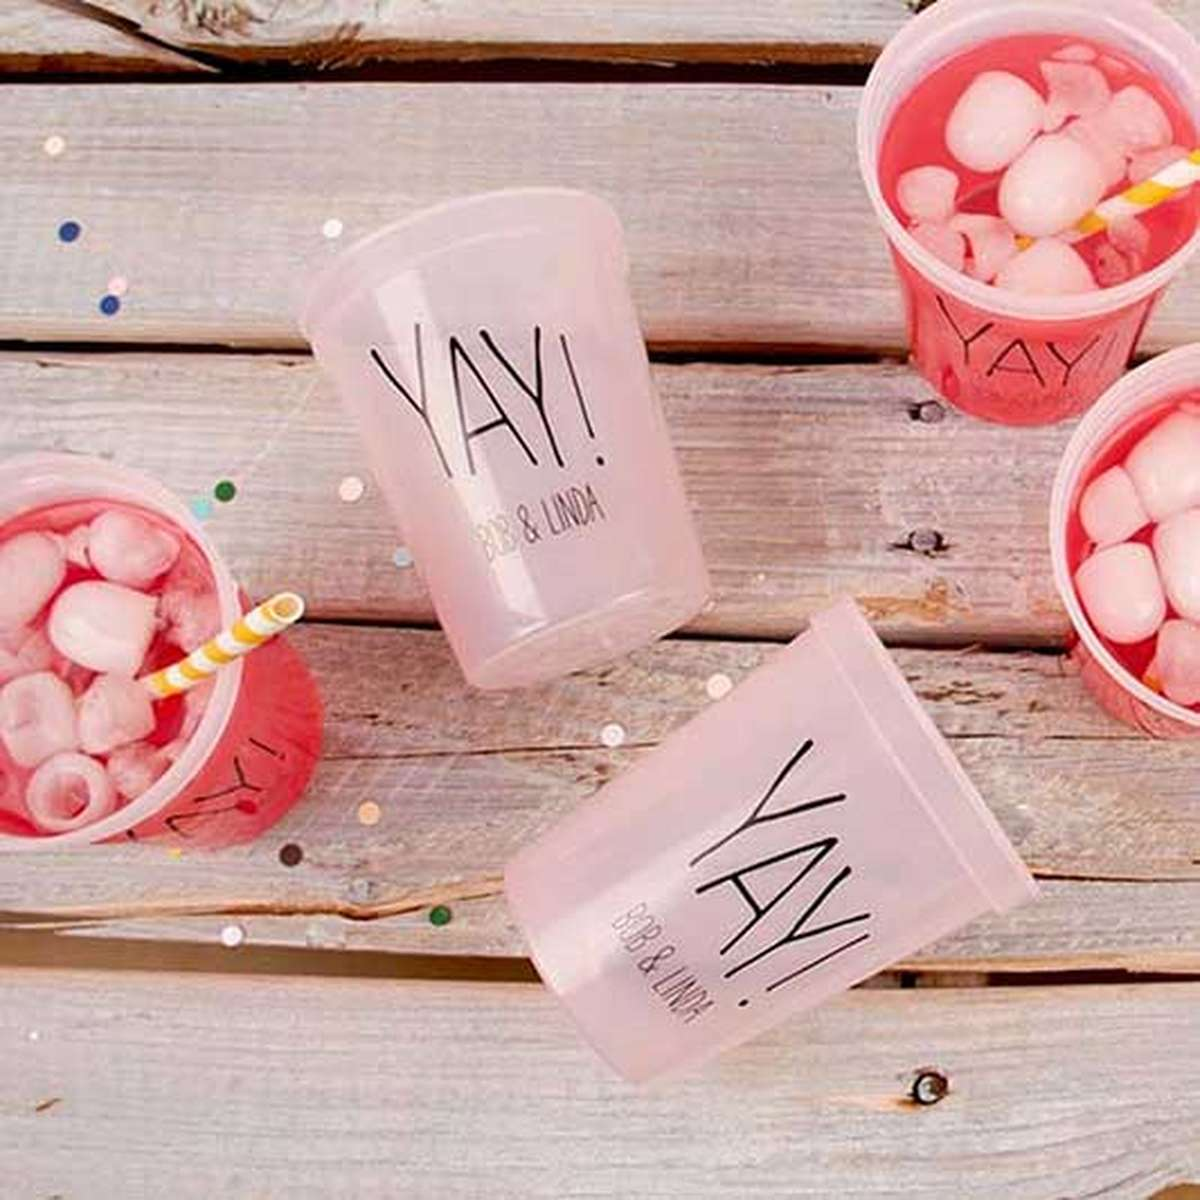 Personalized Party Cups | Design Your Own Party Cups | For Your Party